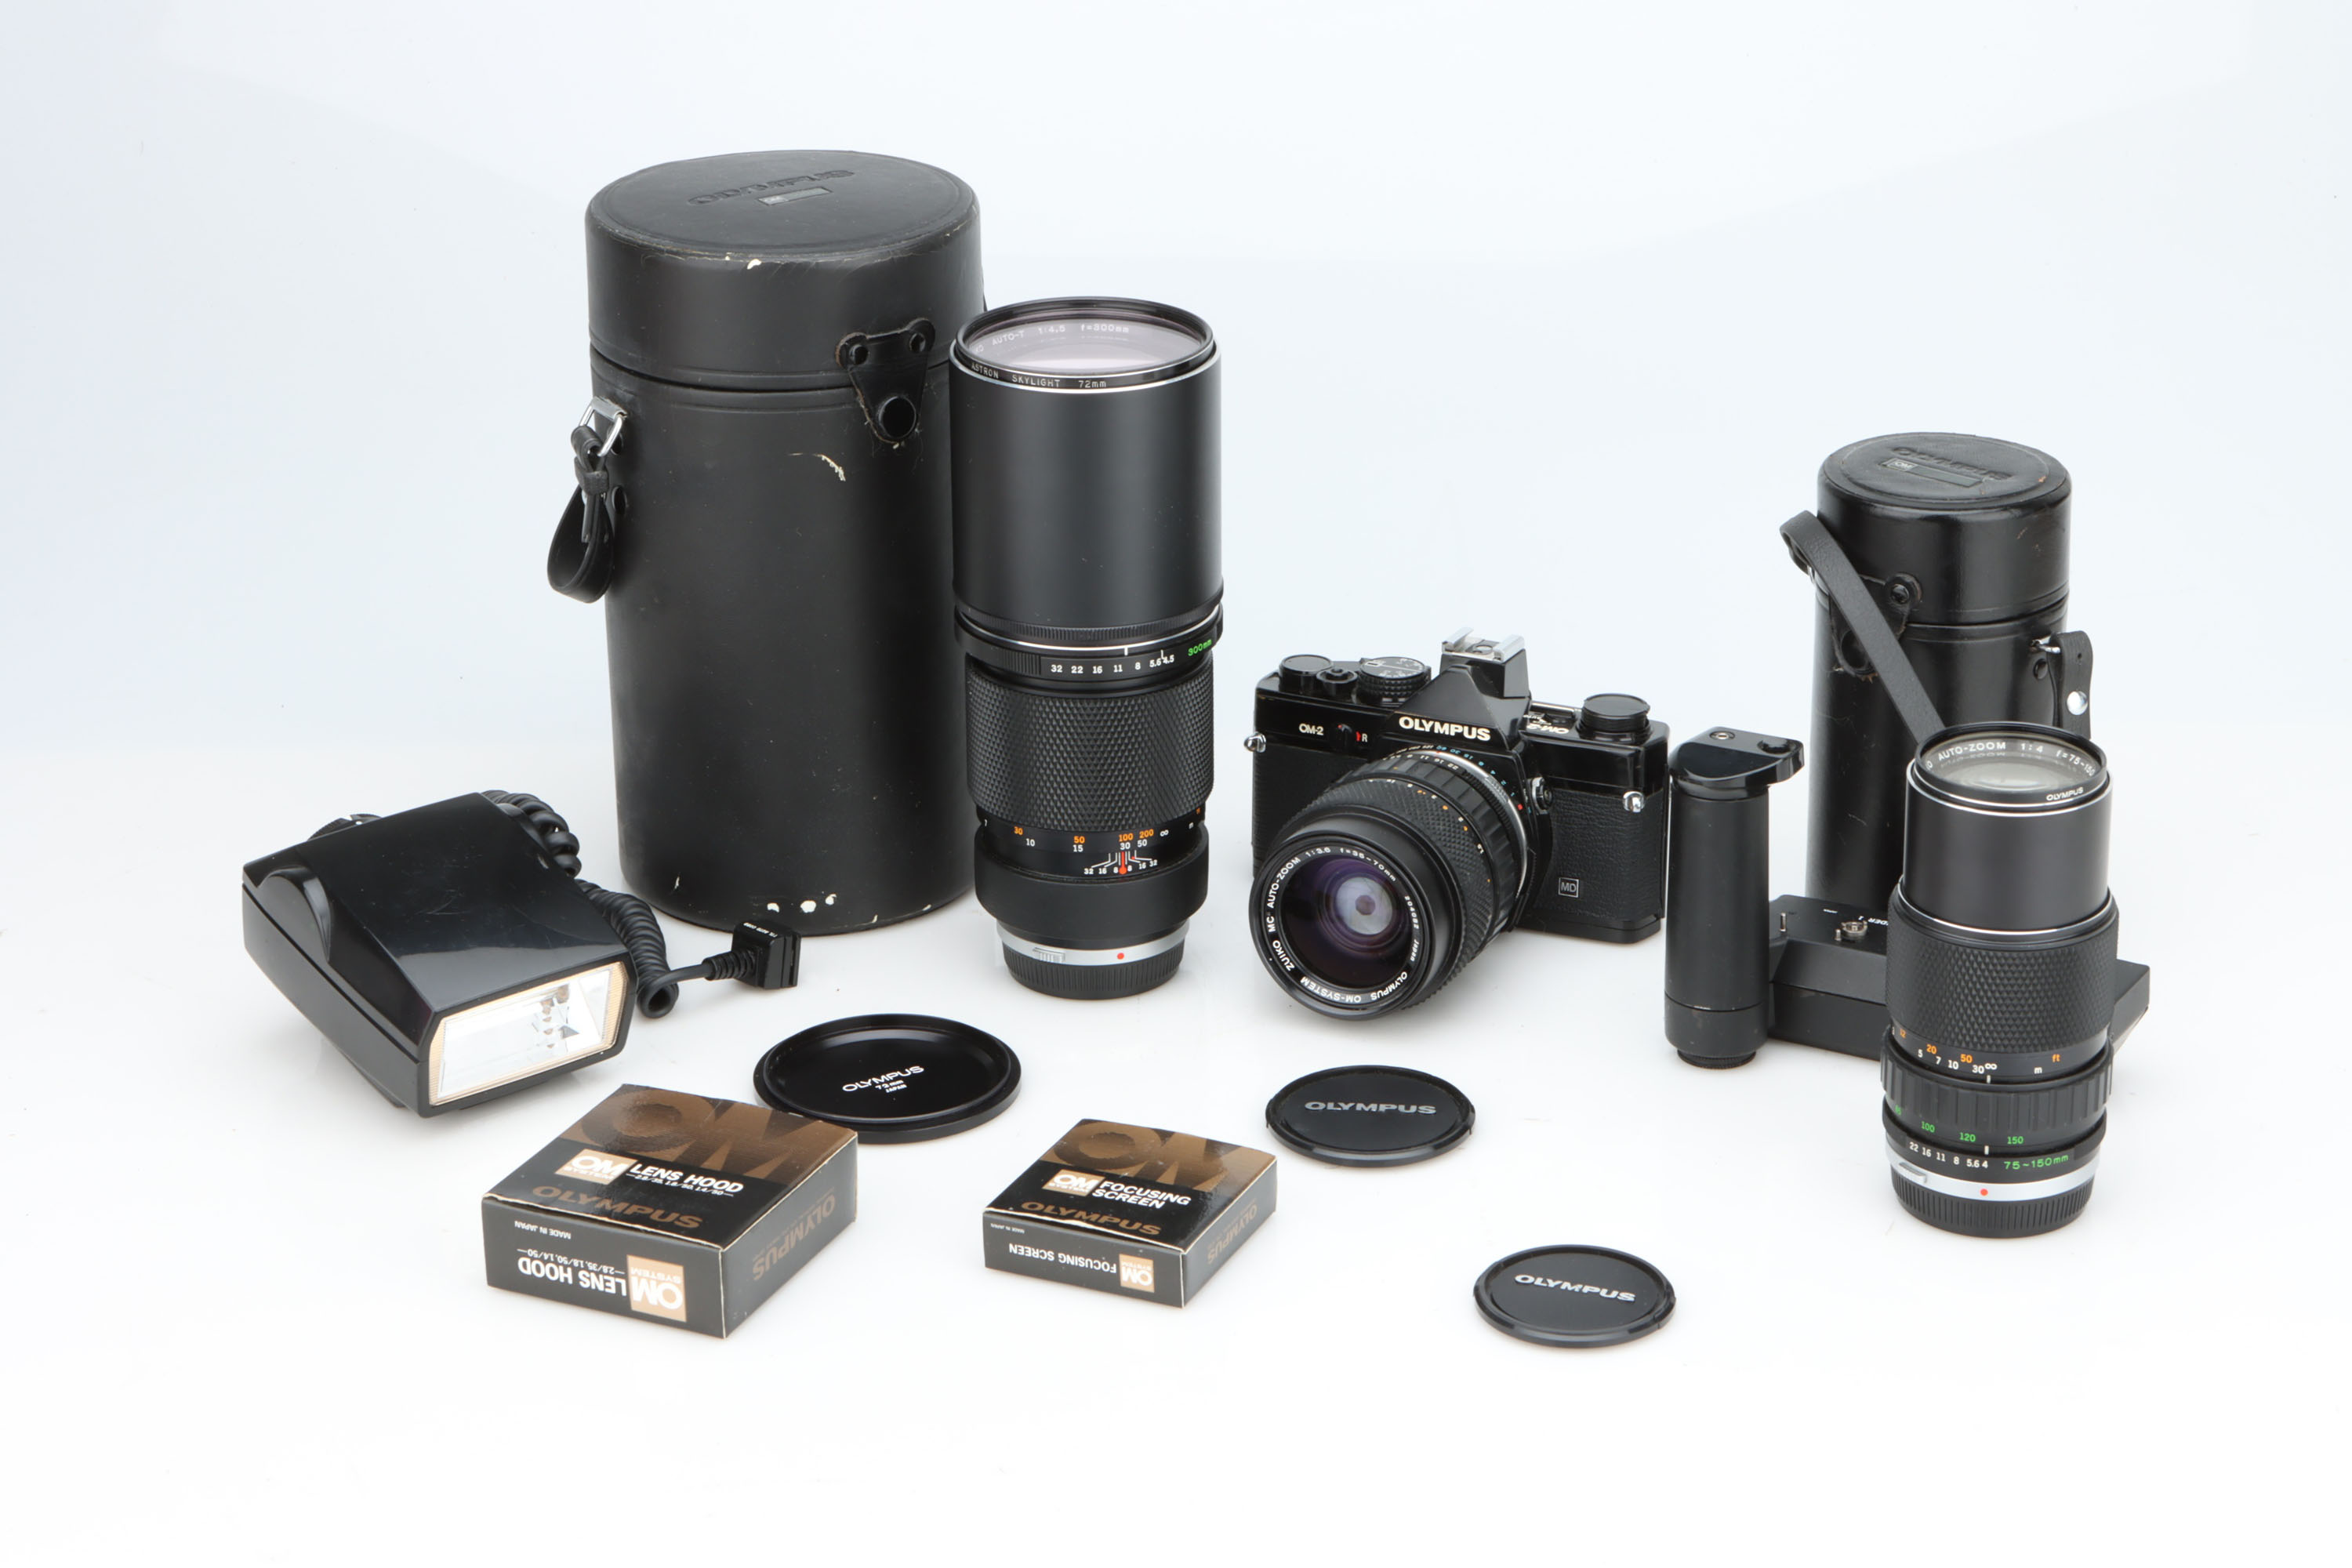 An Olympus OM-2 SLR Camera Outfit,